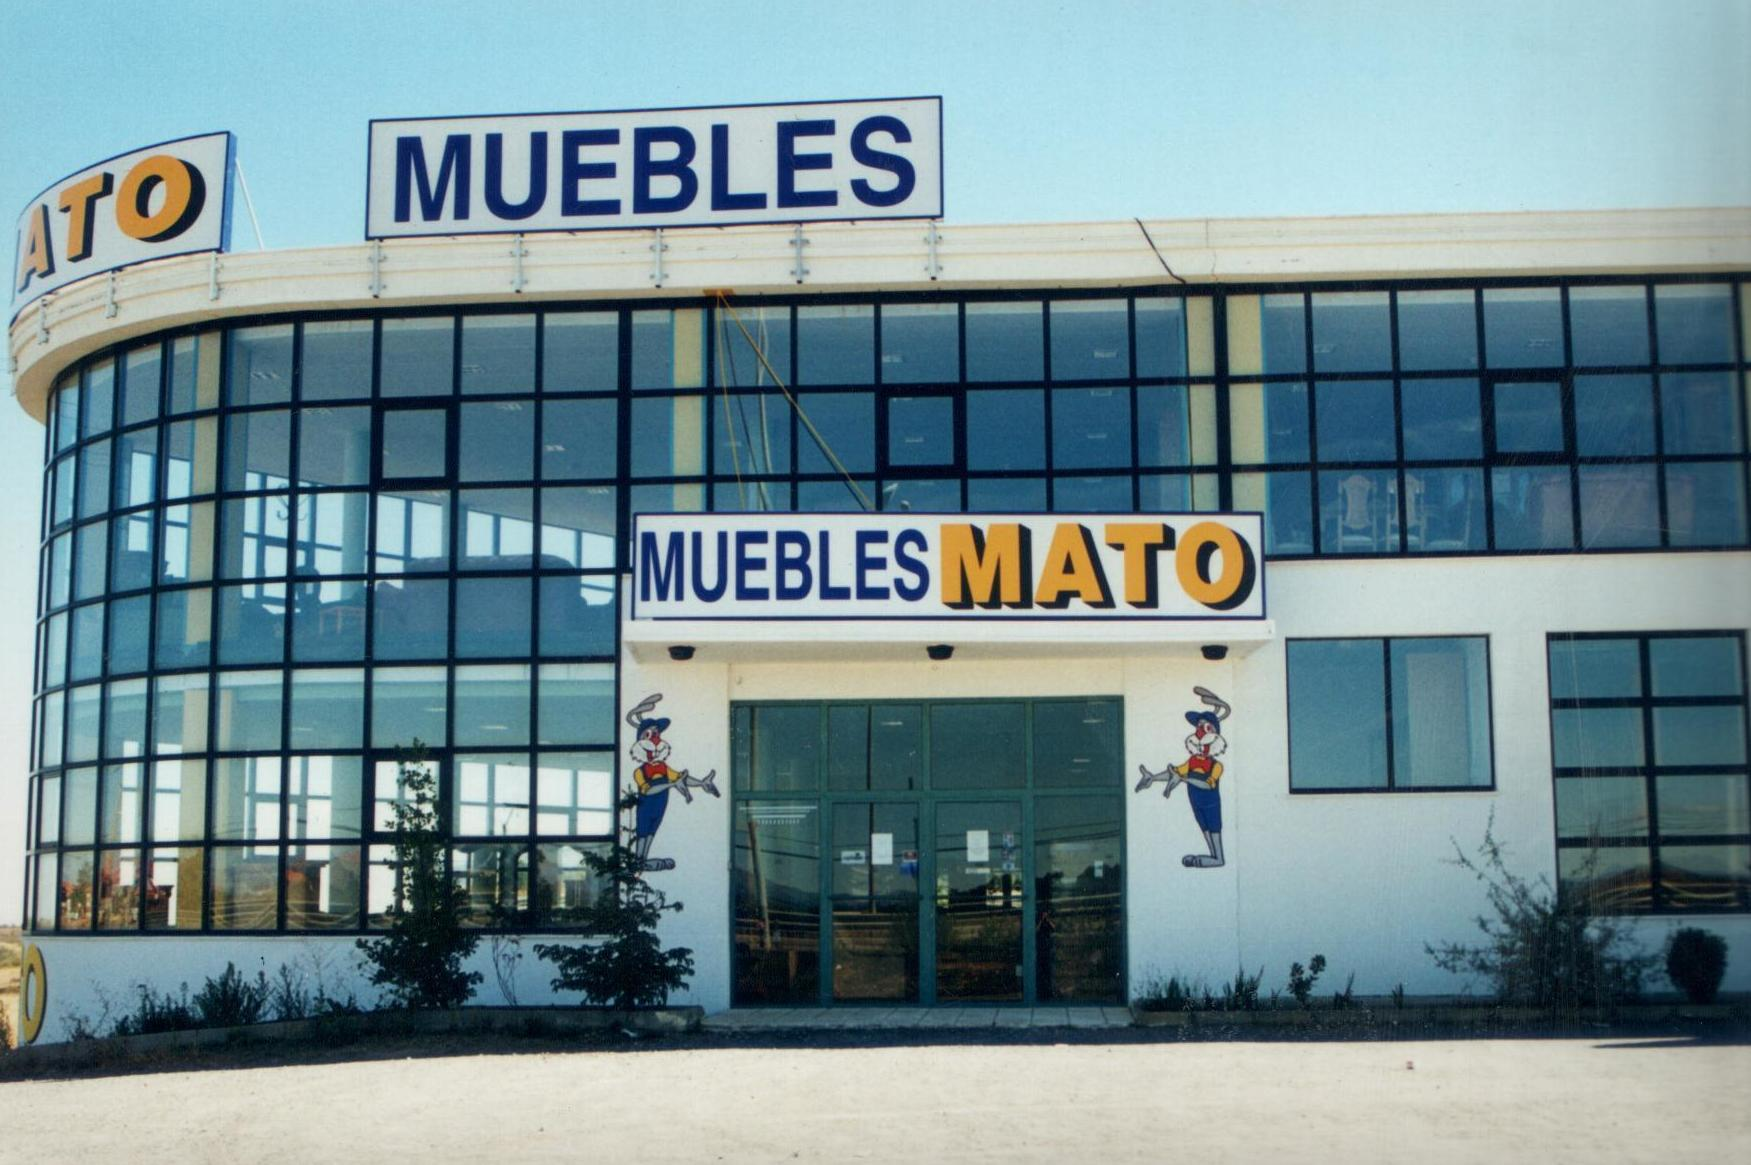 Muebles baratos en asturias perfect tags with muebles for Muebles super baratos